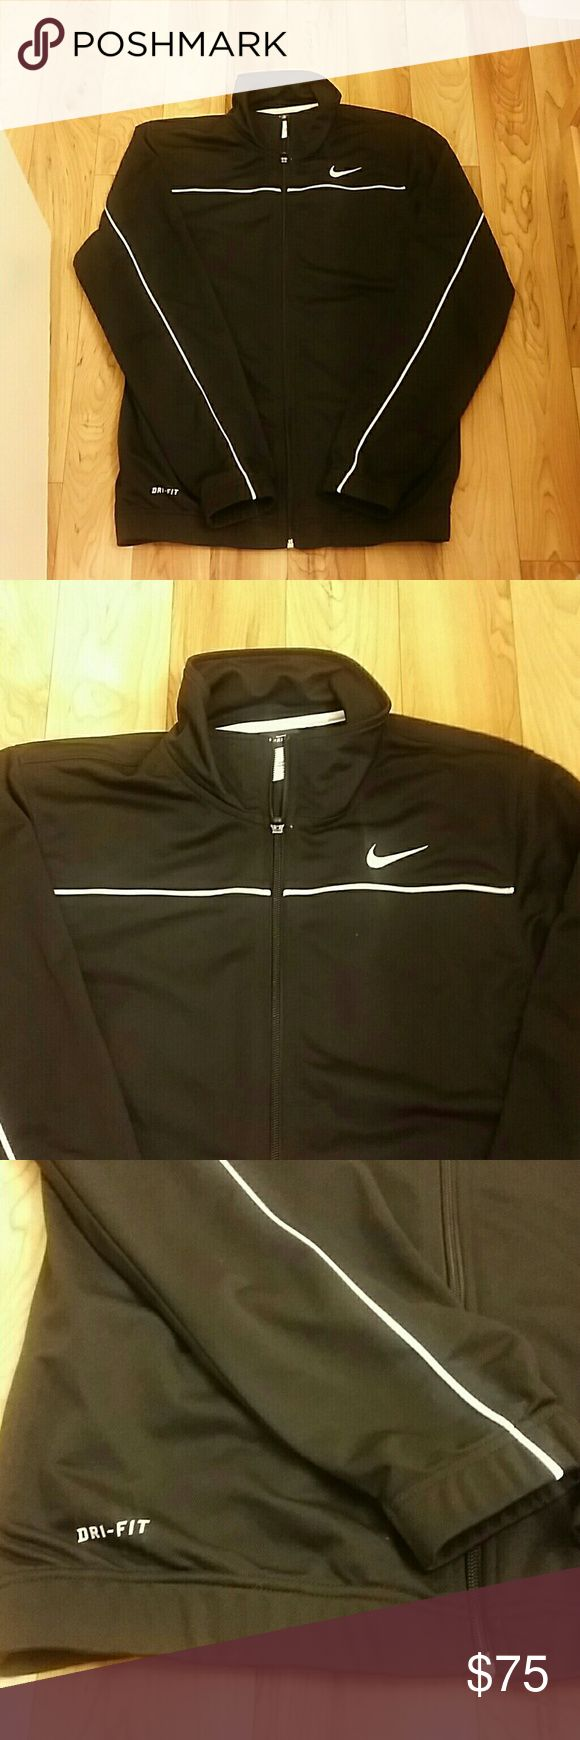 Nike Zip Up EUC Nike zip up. 2 pockets on the side, white line across chest area. Stretchy band around bottom. Size small in men's, will fit Medium in women's. Nike Tops Sweatshirts & Hoodies